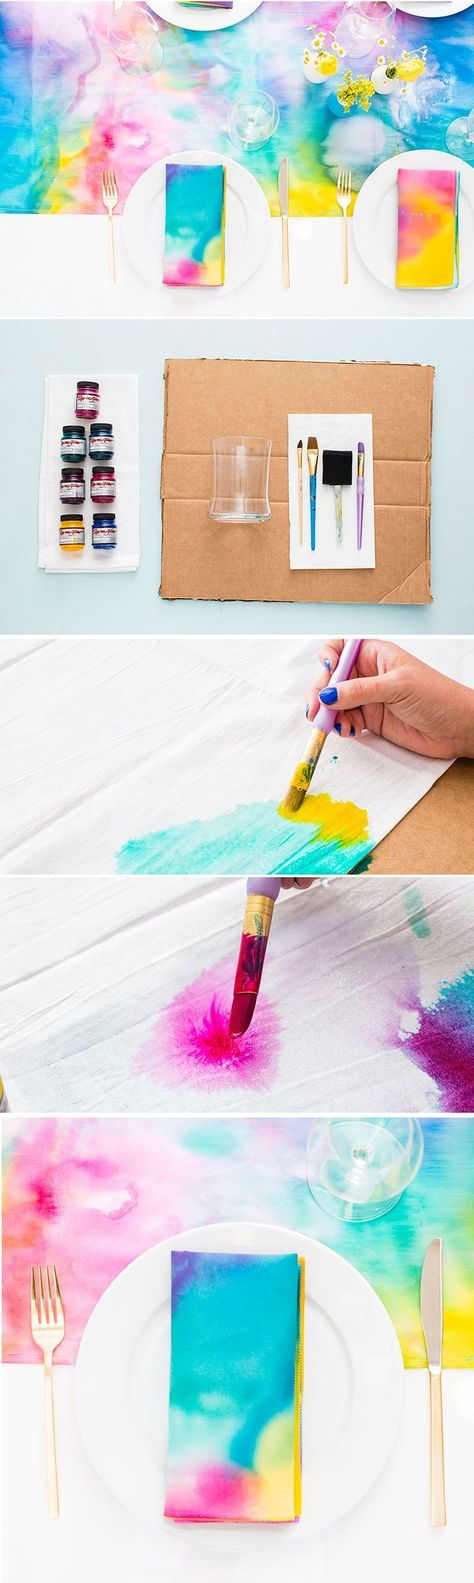 How to make easy watercolor fabric that won't wash out - tutorial by Brit & Co